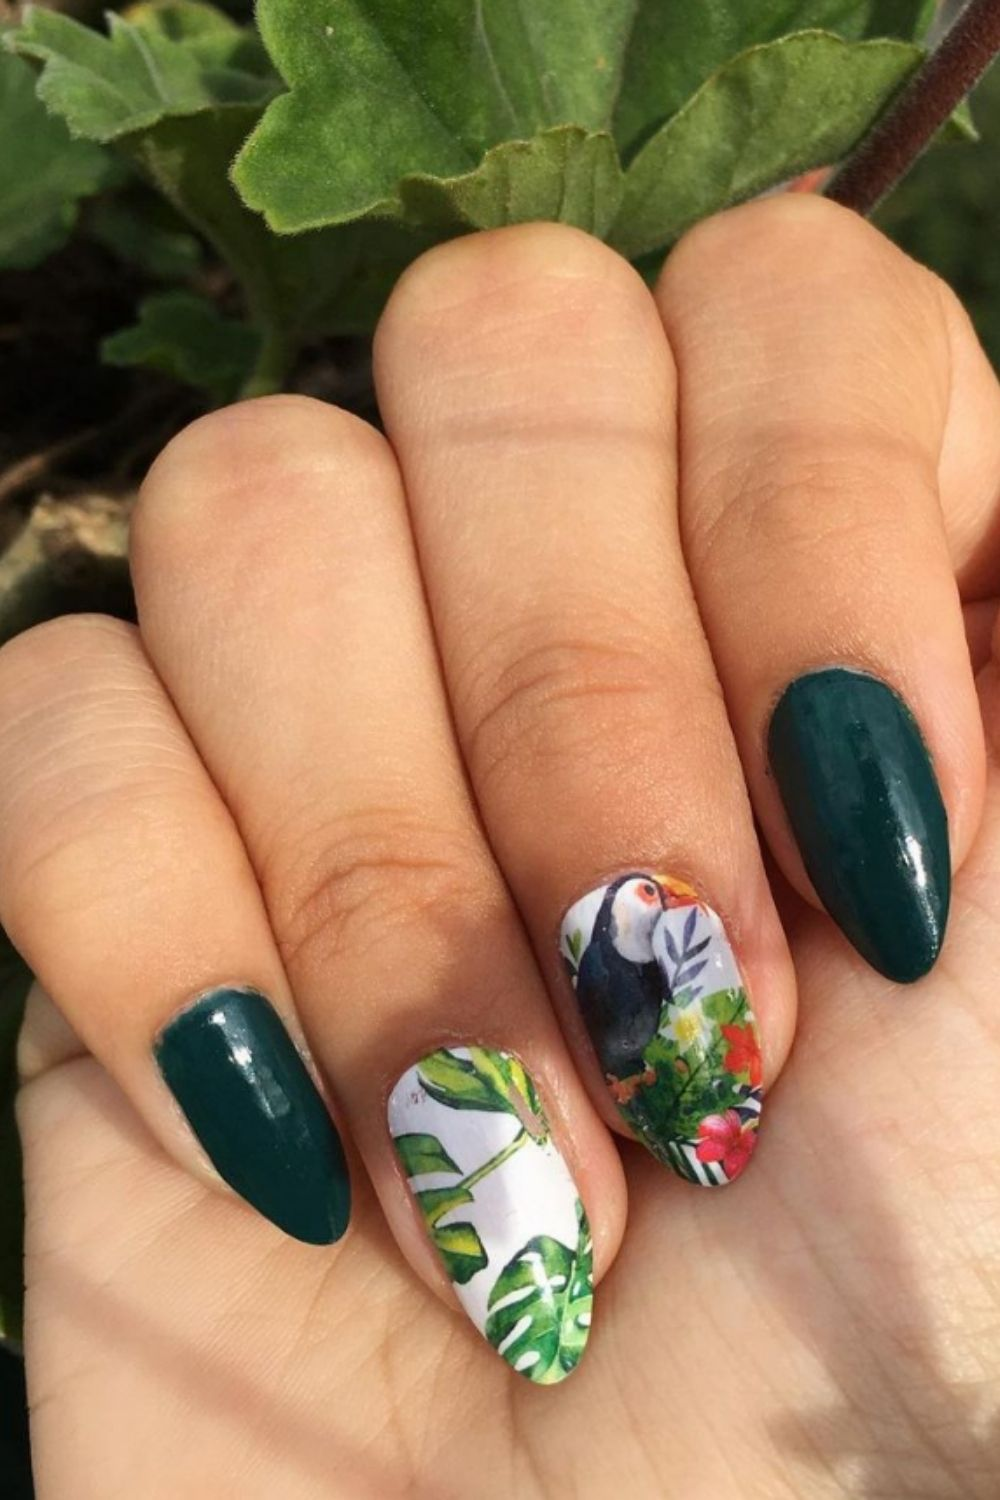 Almond acrylic nails   Fresh Design Ideas for Almond-Shaped Nails